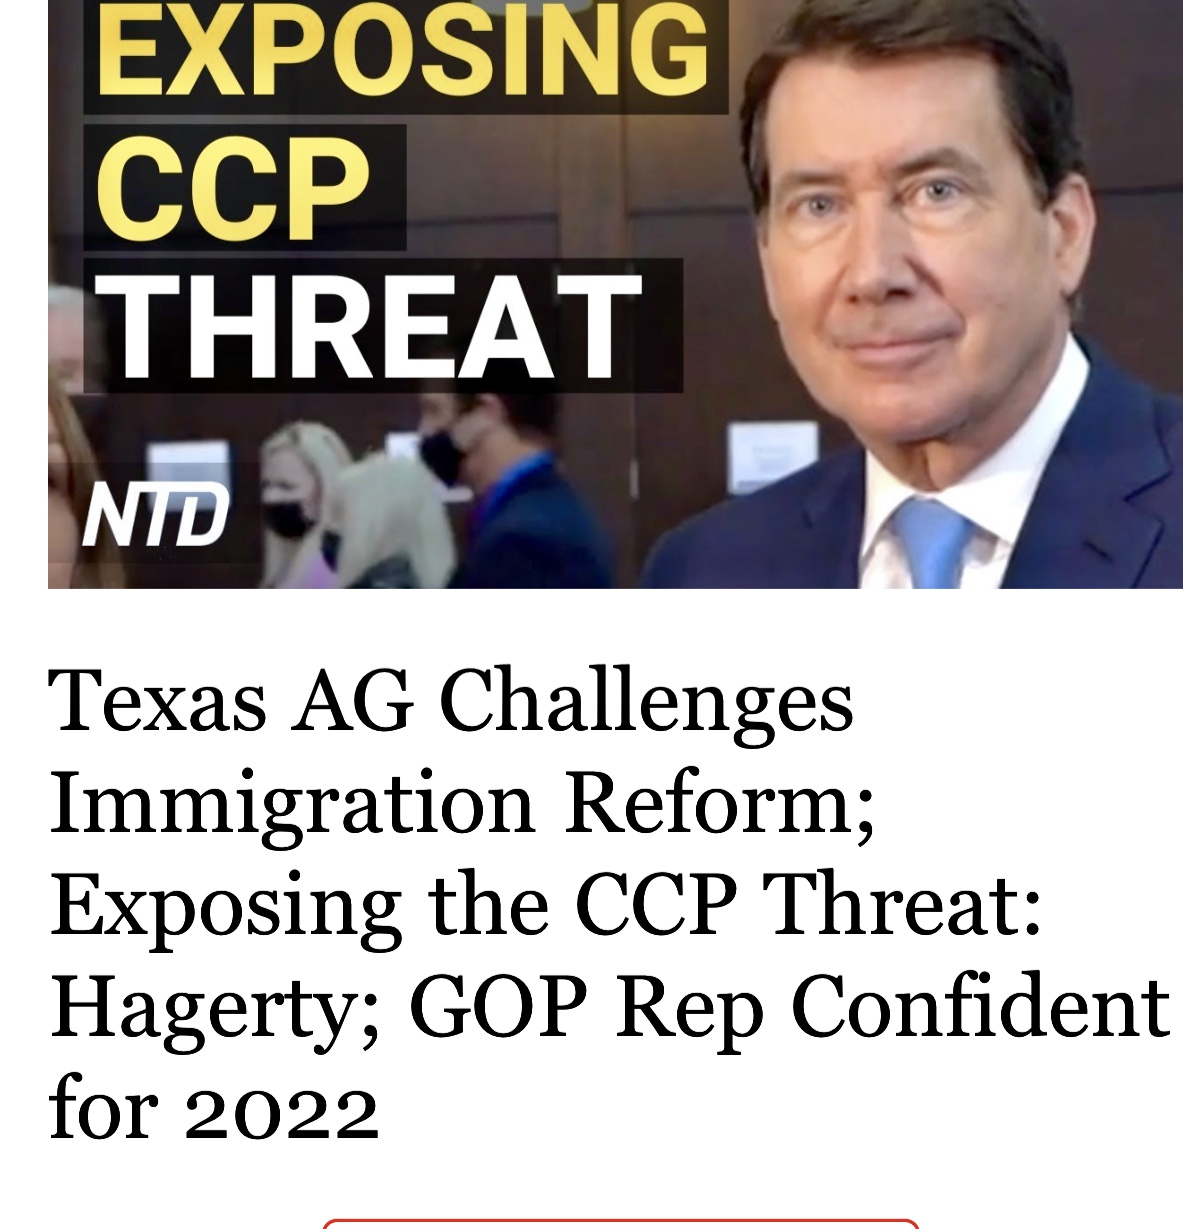 Texas AG Challenges Immigration Reform; Exposing the CCP Threat: Hagerty; GOP Rep Confident for 2022